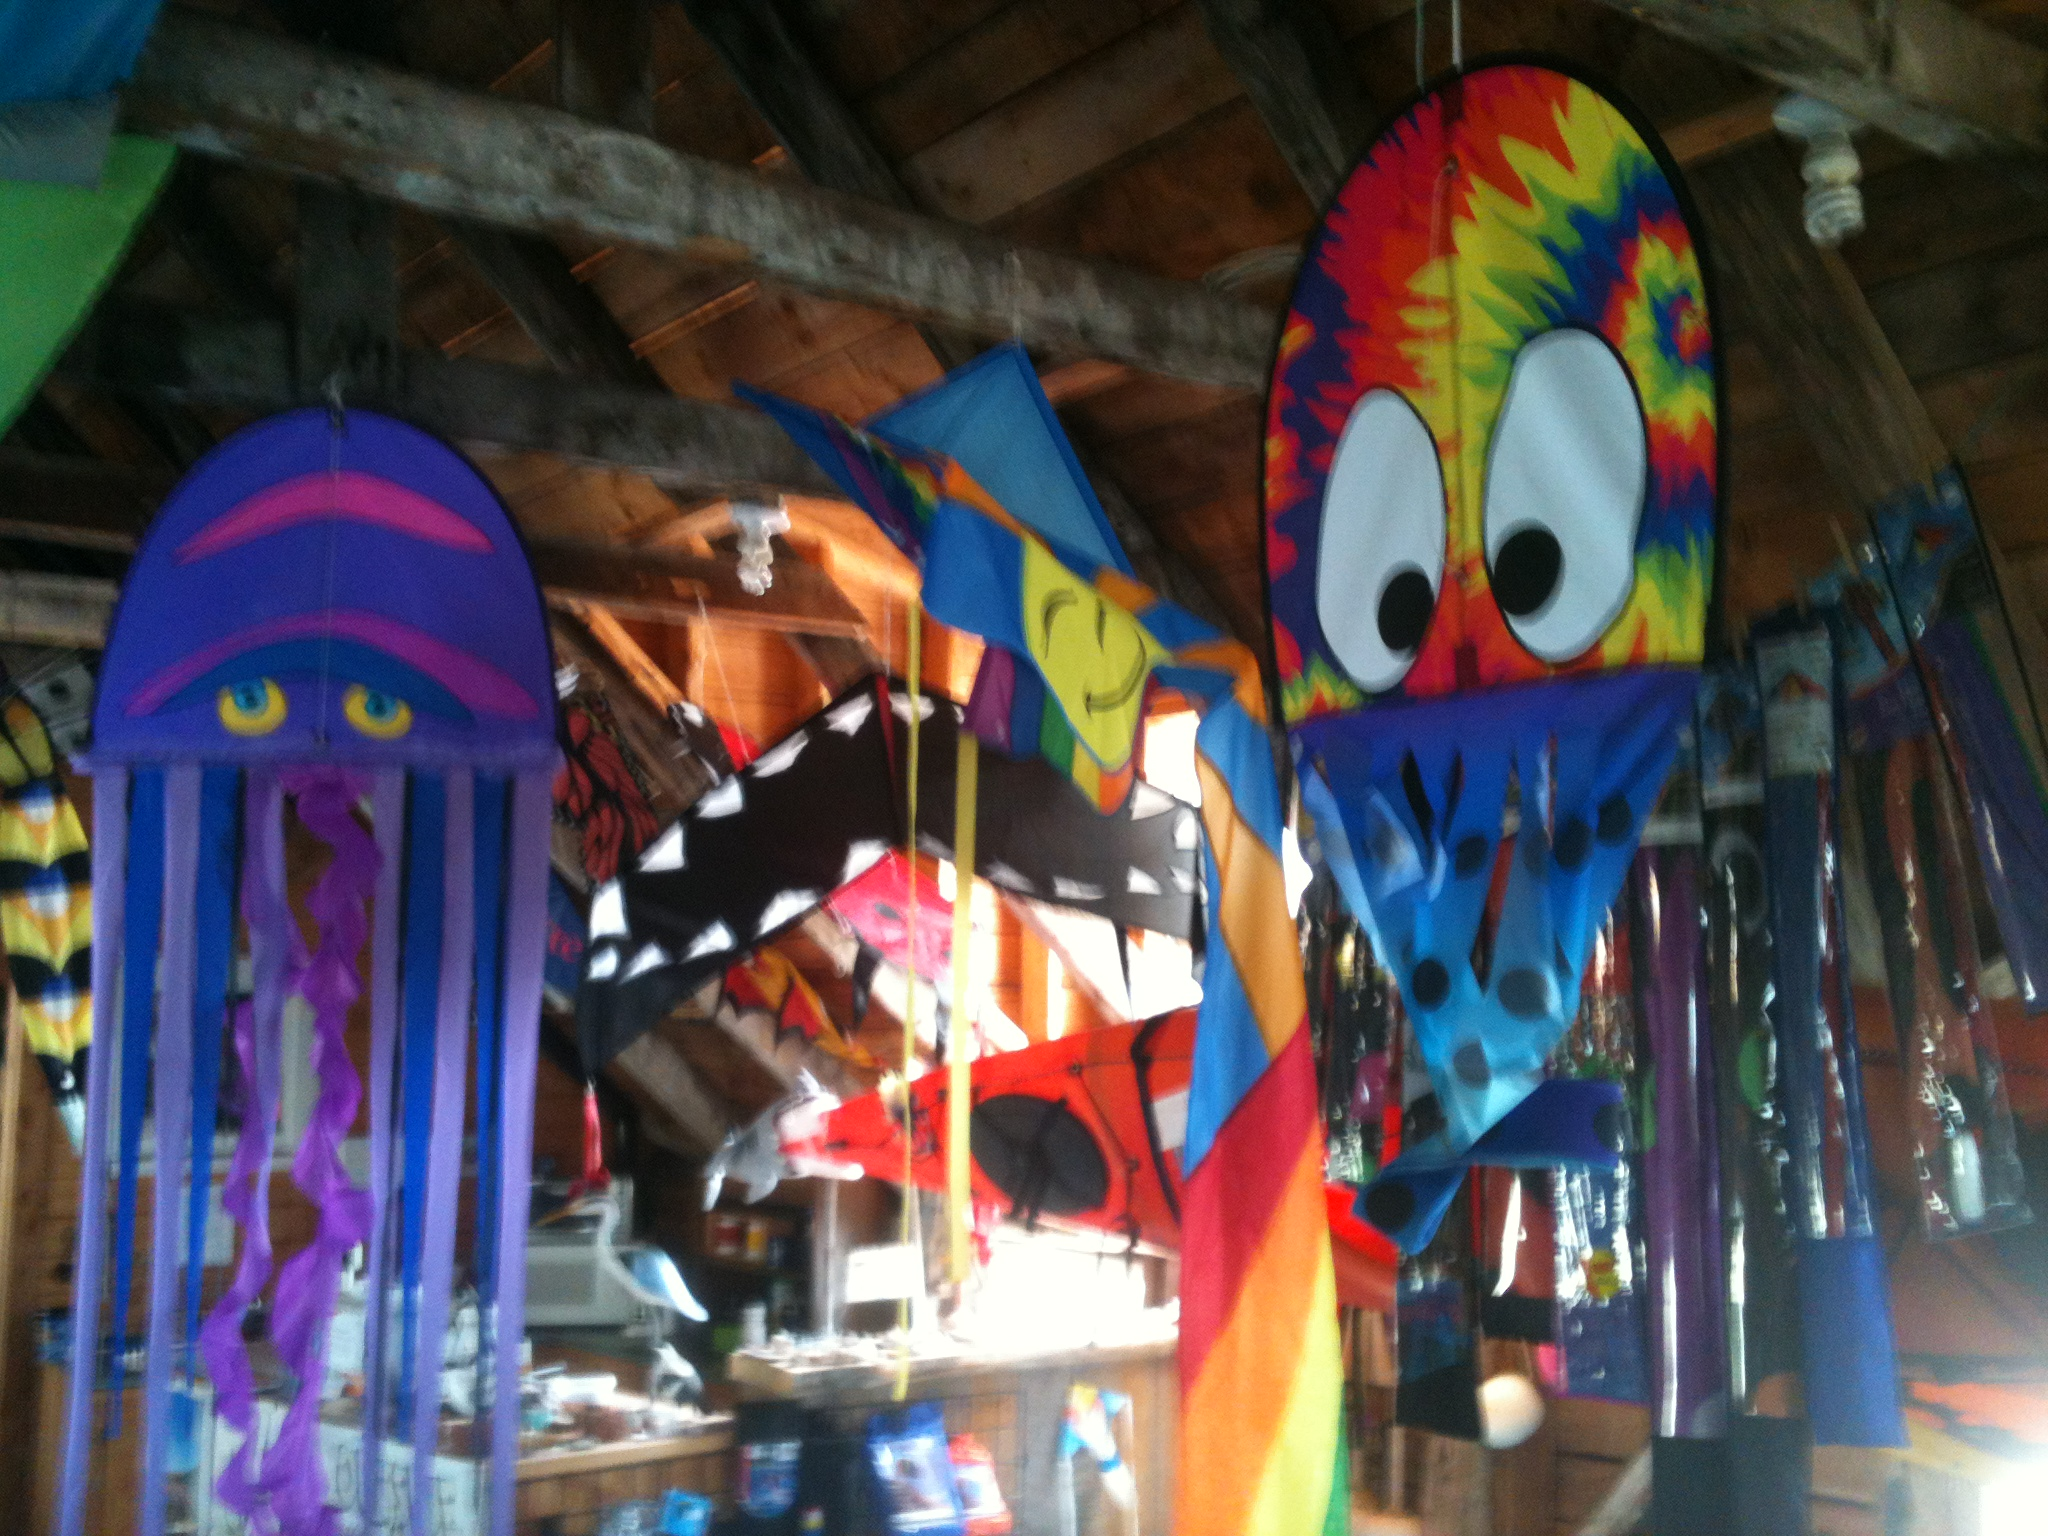 Kites for Sale - Outside Expeditions